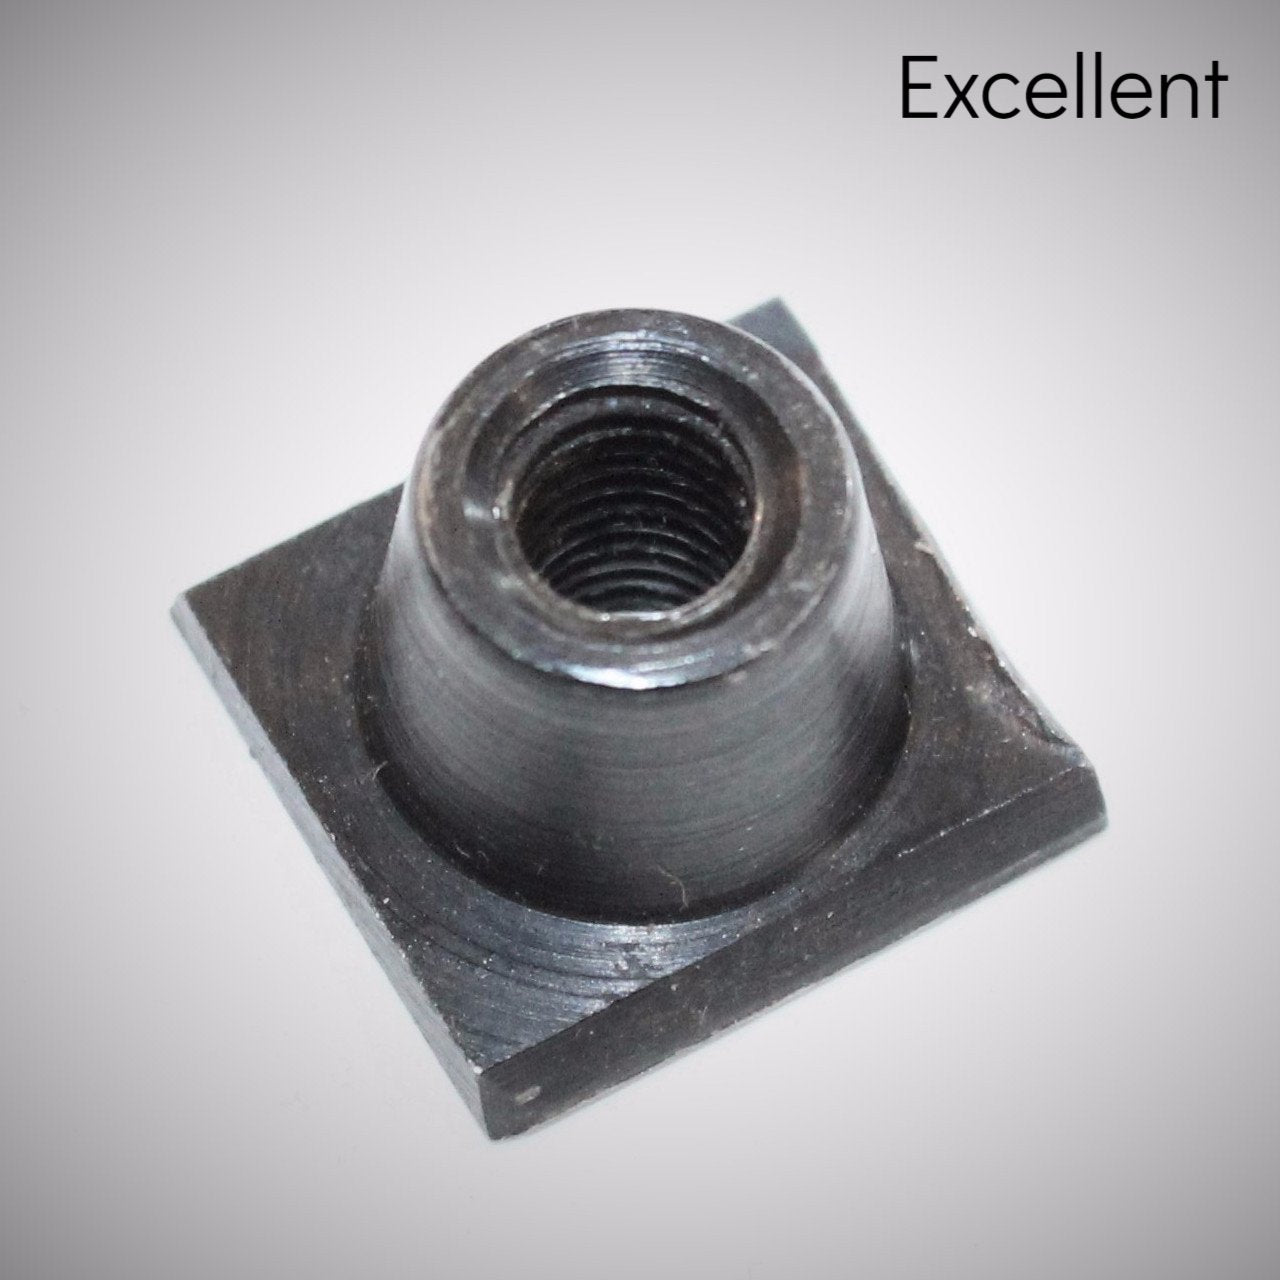 Standard Barrel Escutcheon / Nut